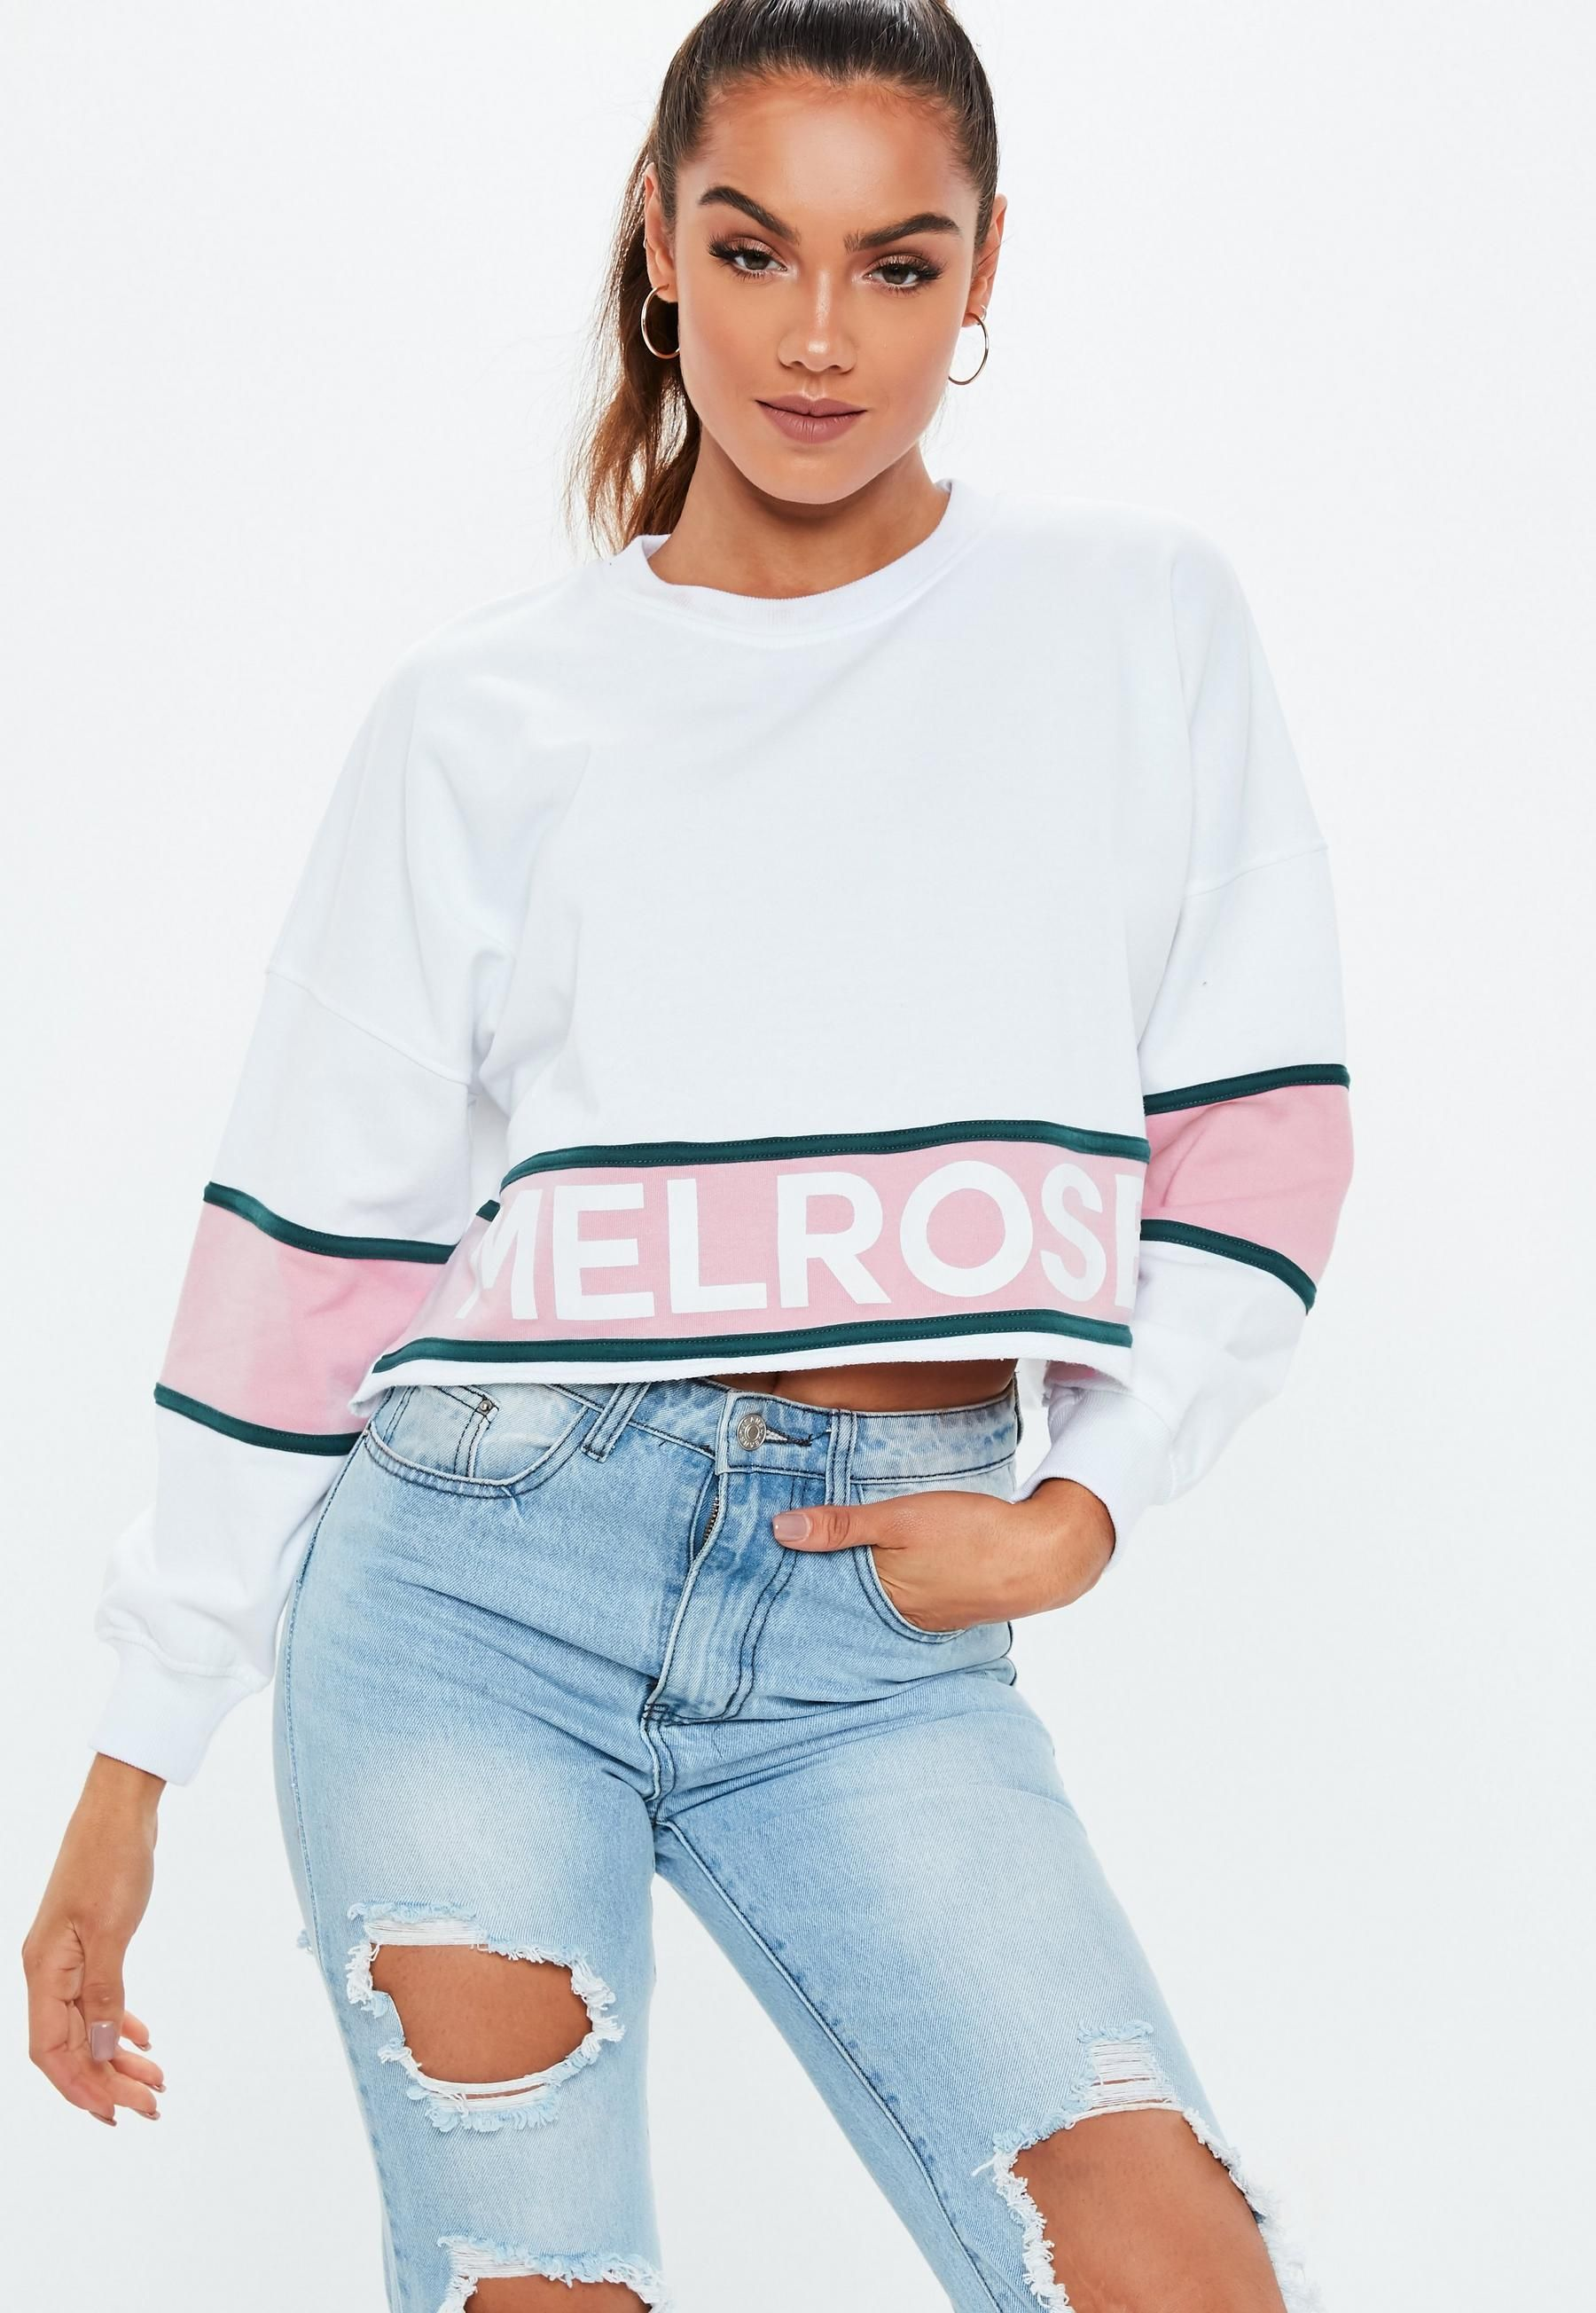 bffd4ed87b8 Missguided - White Melrose Colourblock Sweatshirt in 2019